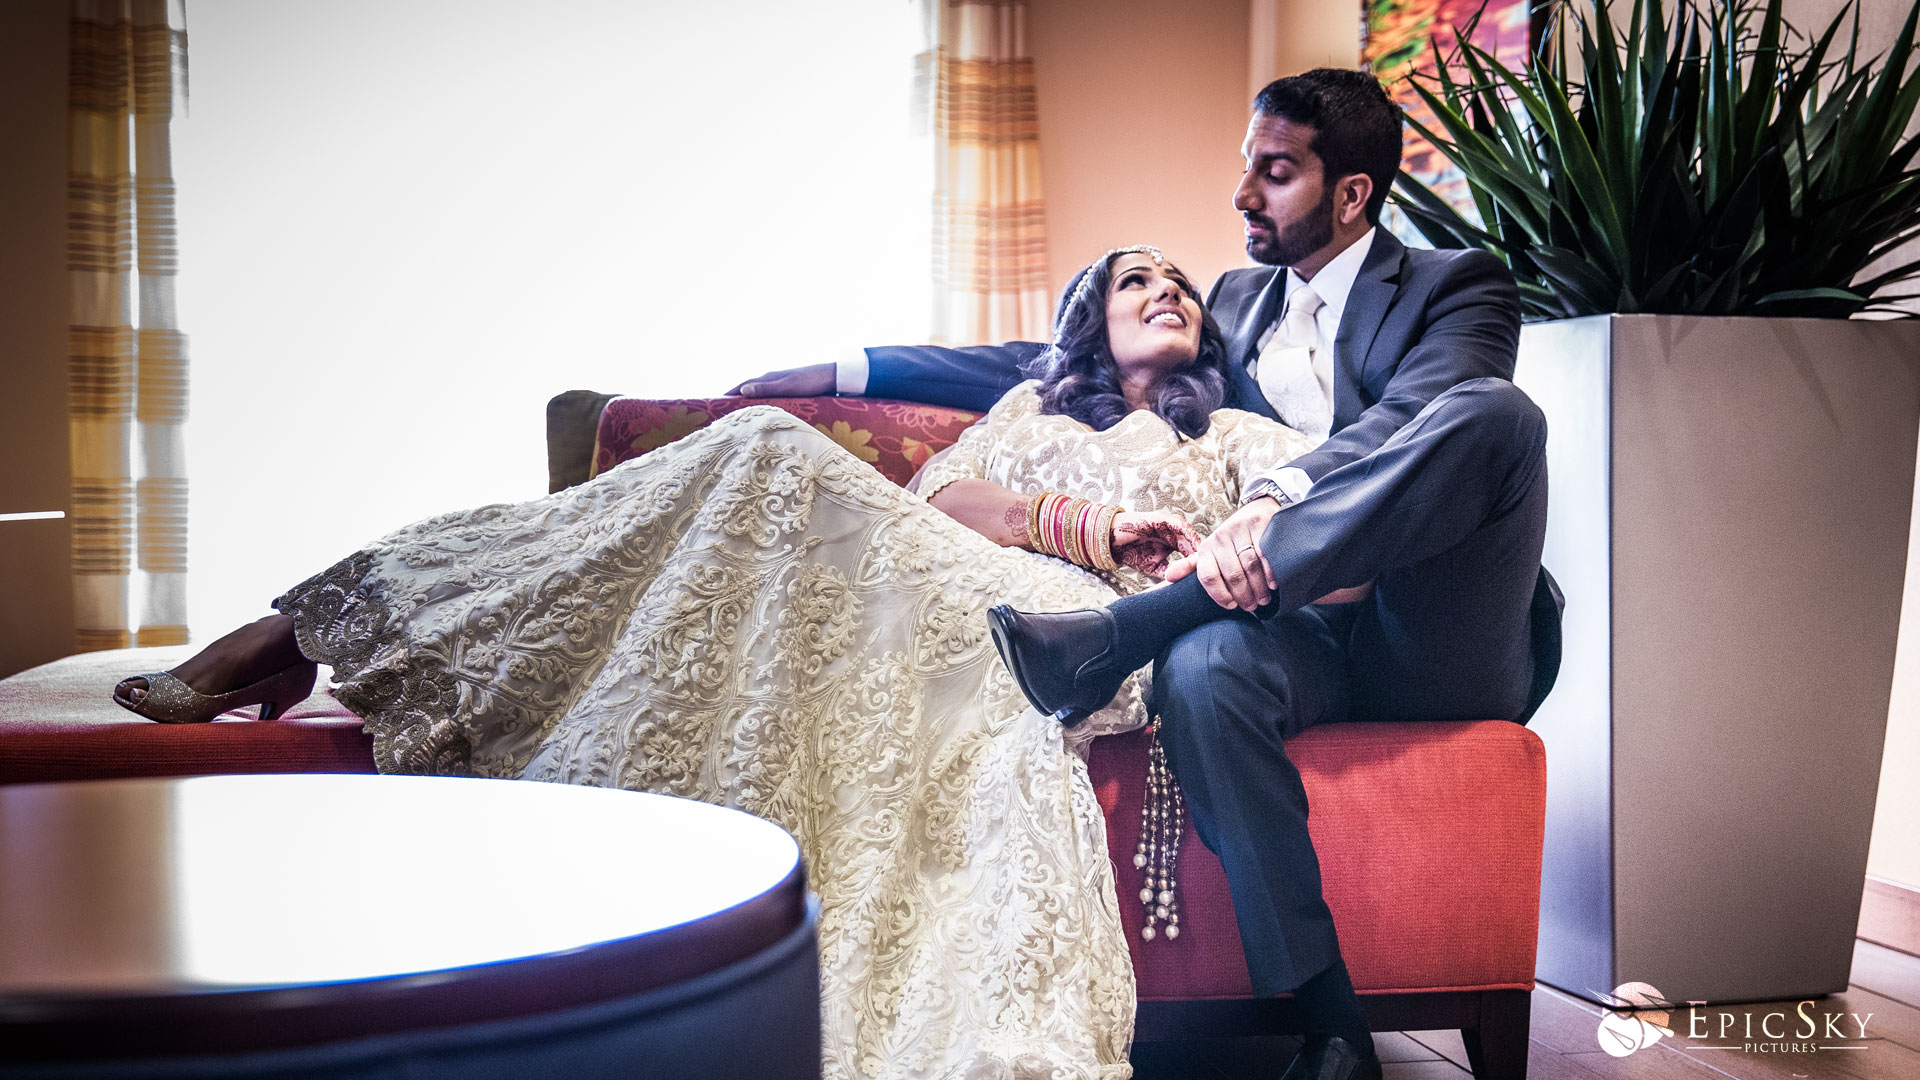 epic_sky_pictures_bridal_white_wedding_dress_couple_in_love_photography_glimmer_wedding_getting_ready_detail_candid_wedding_sikh_bride_blendstudio